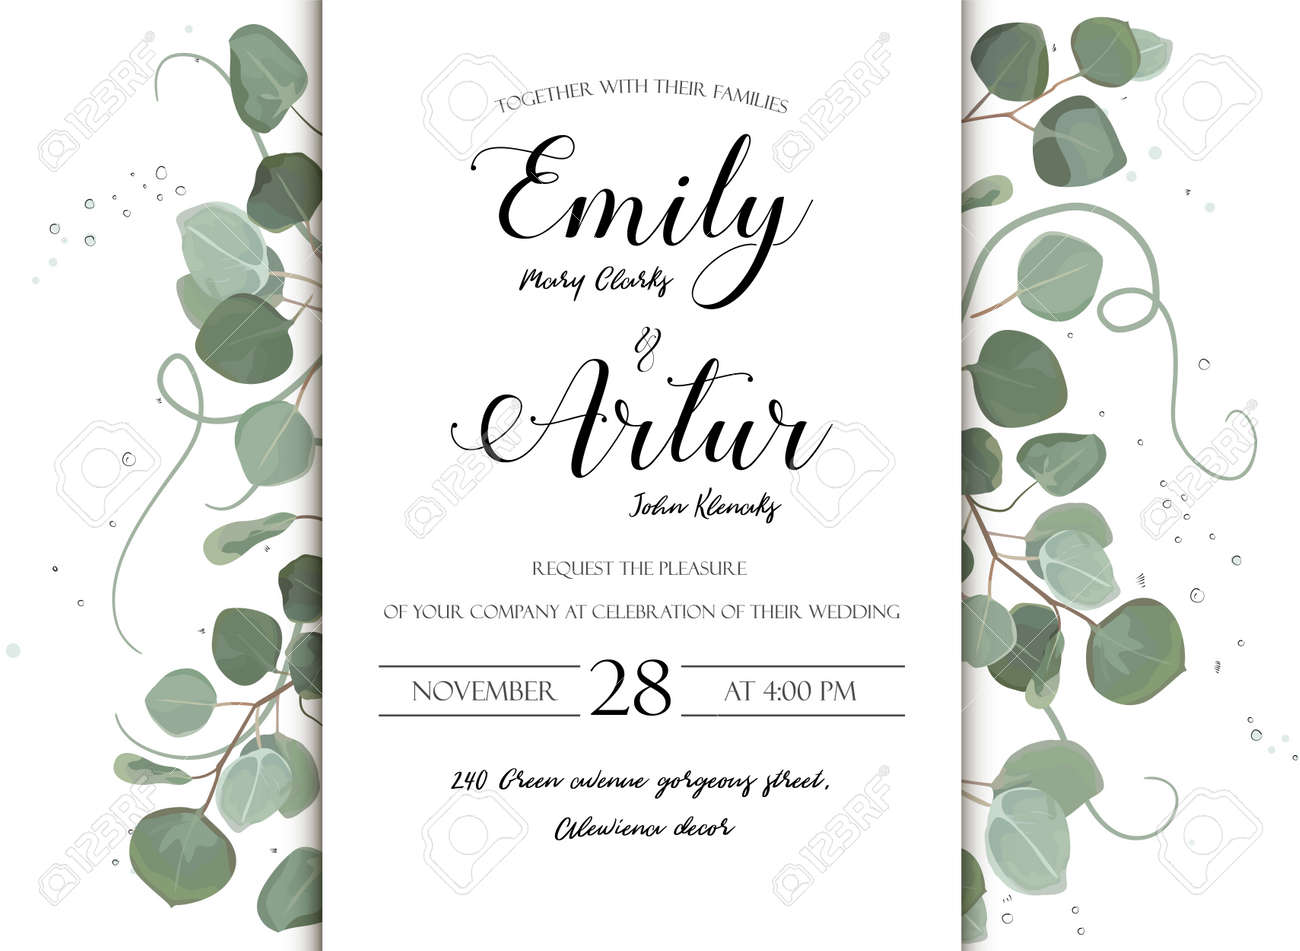 Wedding floral hand drawn invite invitation card design: Eucalyptus silver dollar branch greenery natural leaves watercolor style, rustic, elegant delicate green anniversary copy space beauty template - 92801222